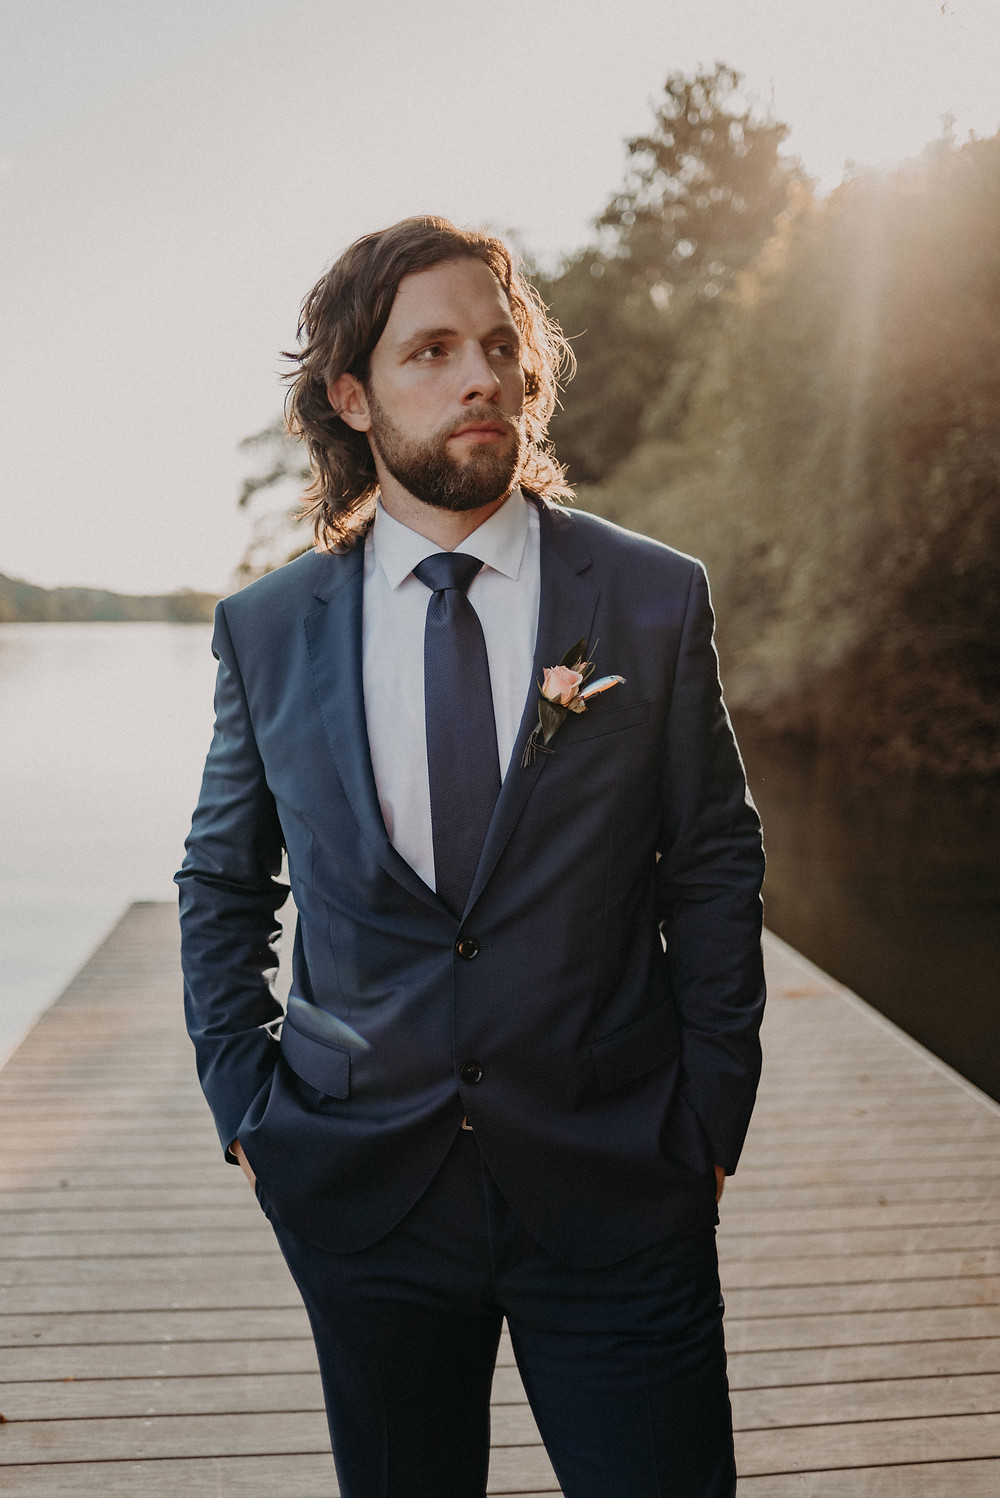 Groom in a beautiful suit by the river